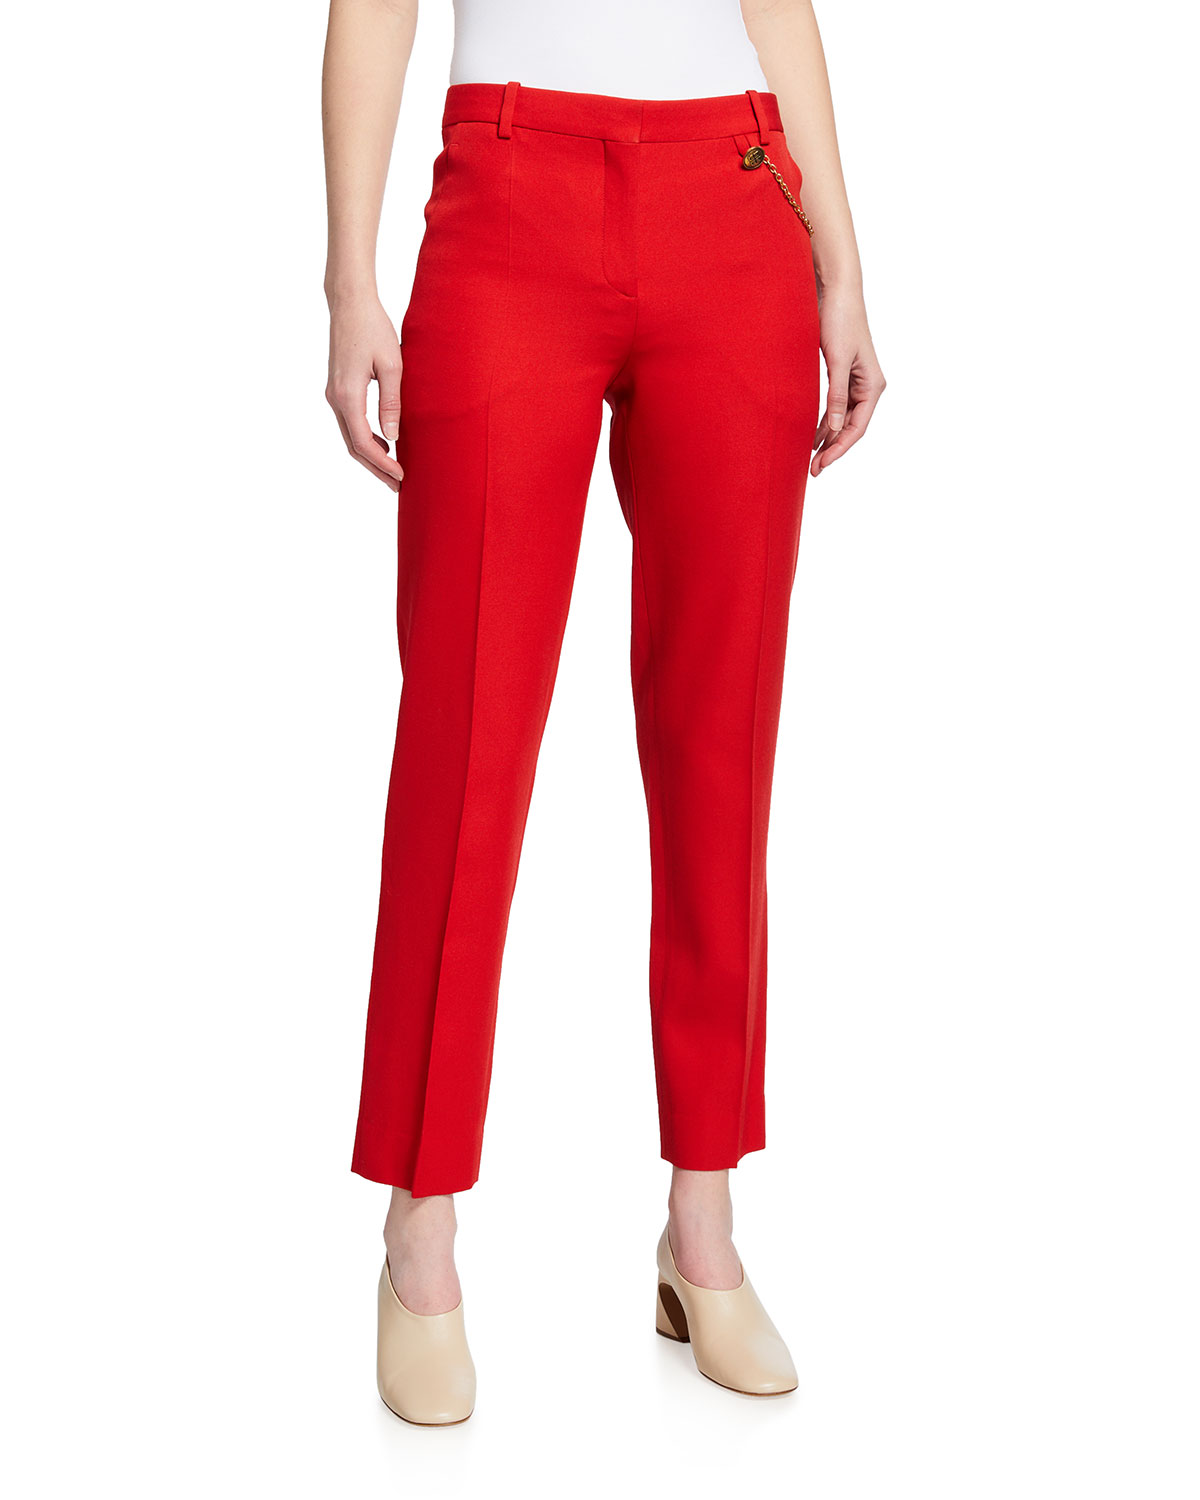 Givenchy SOLID WOOL ANKLE-LENGTH CIGARETTE TROUSERS W/ CHAIN